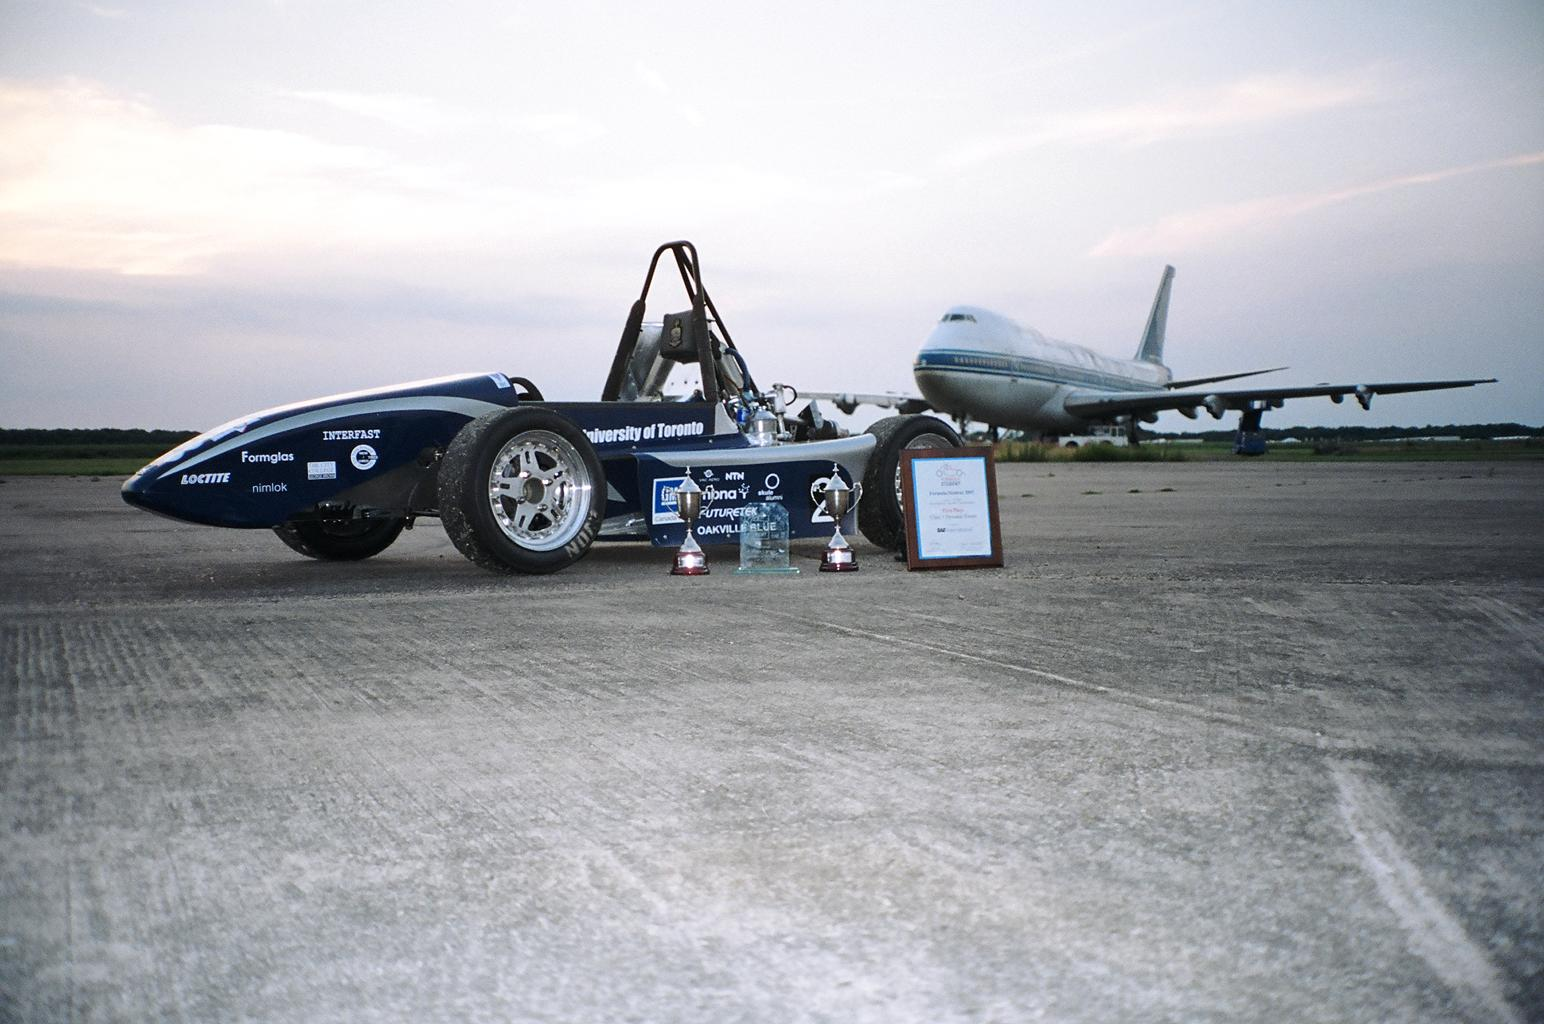 UT05 after winning overall at Formula Student UK in 2005 at Bruntingthorpe.